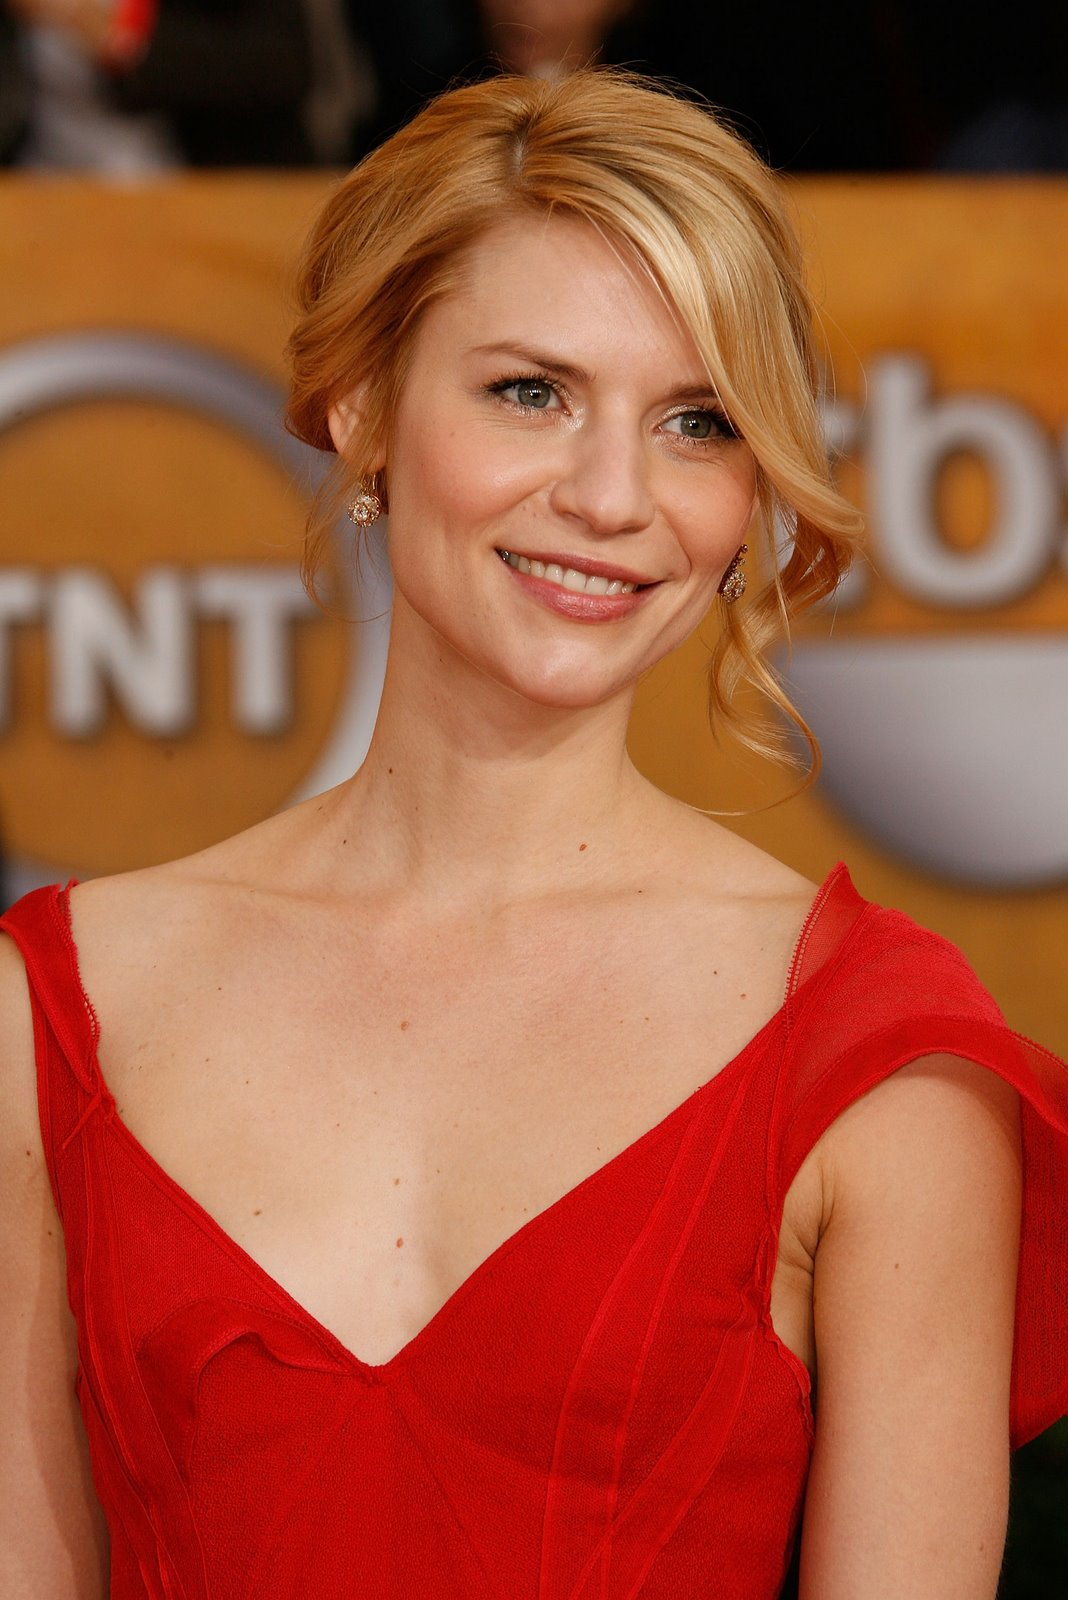 Claire Danes Nude Photos 2019 - 2020 - Hot Leaked Naked -3442